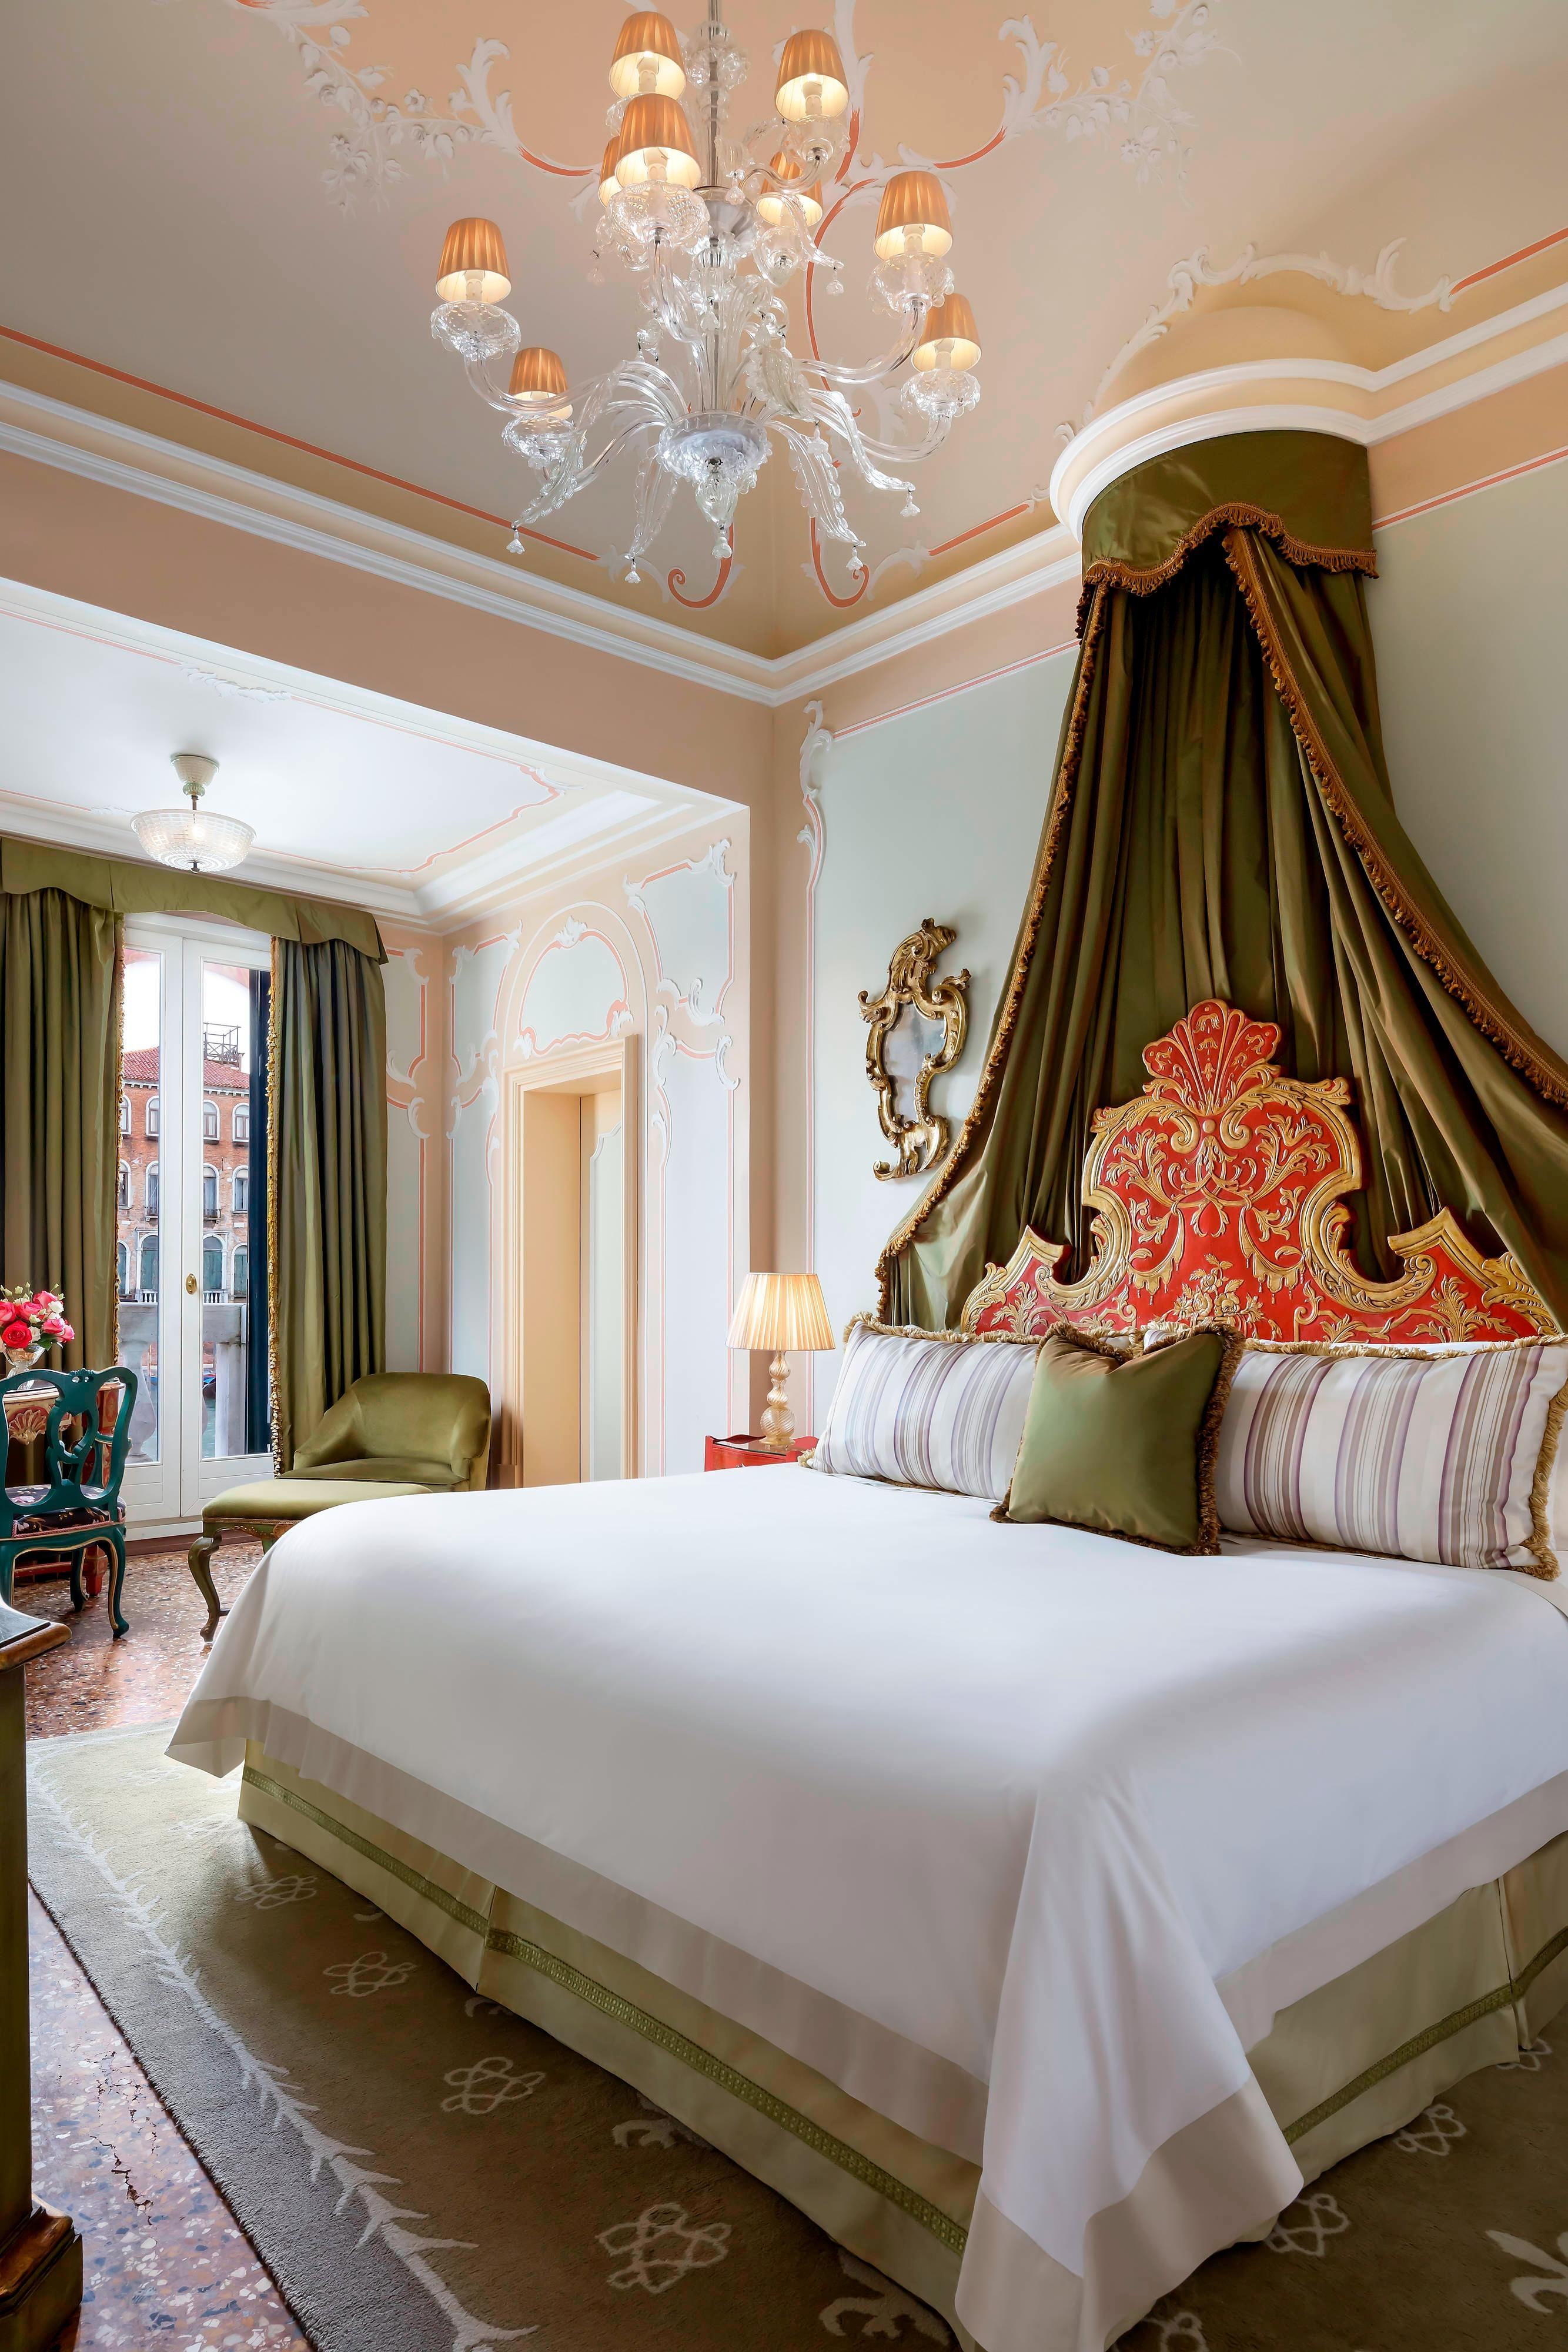 Luxury Hotel Rooms: The Gritti Palace, A Luxury